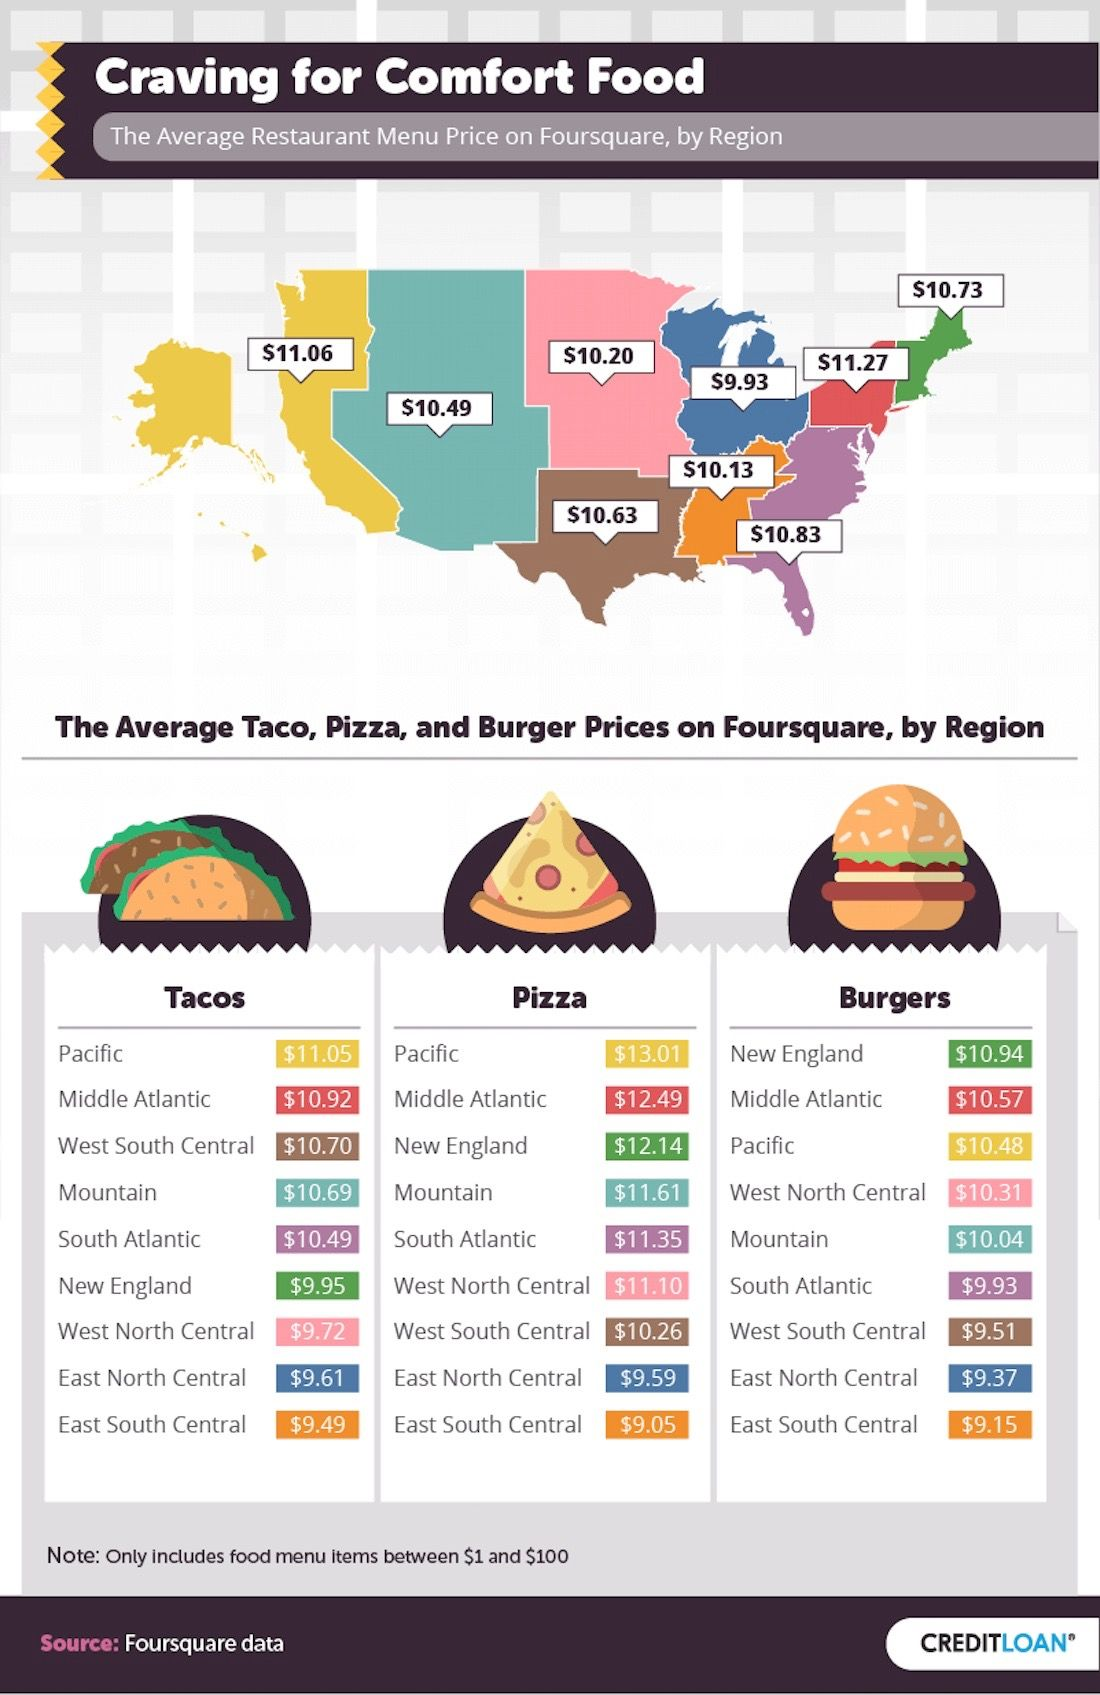 craving-for-comfort-food infographic